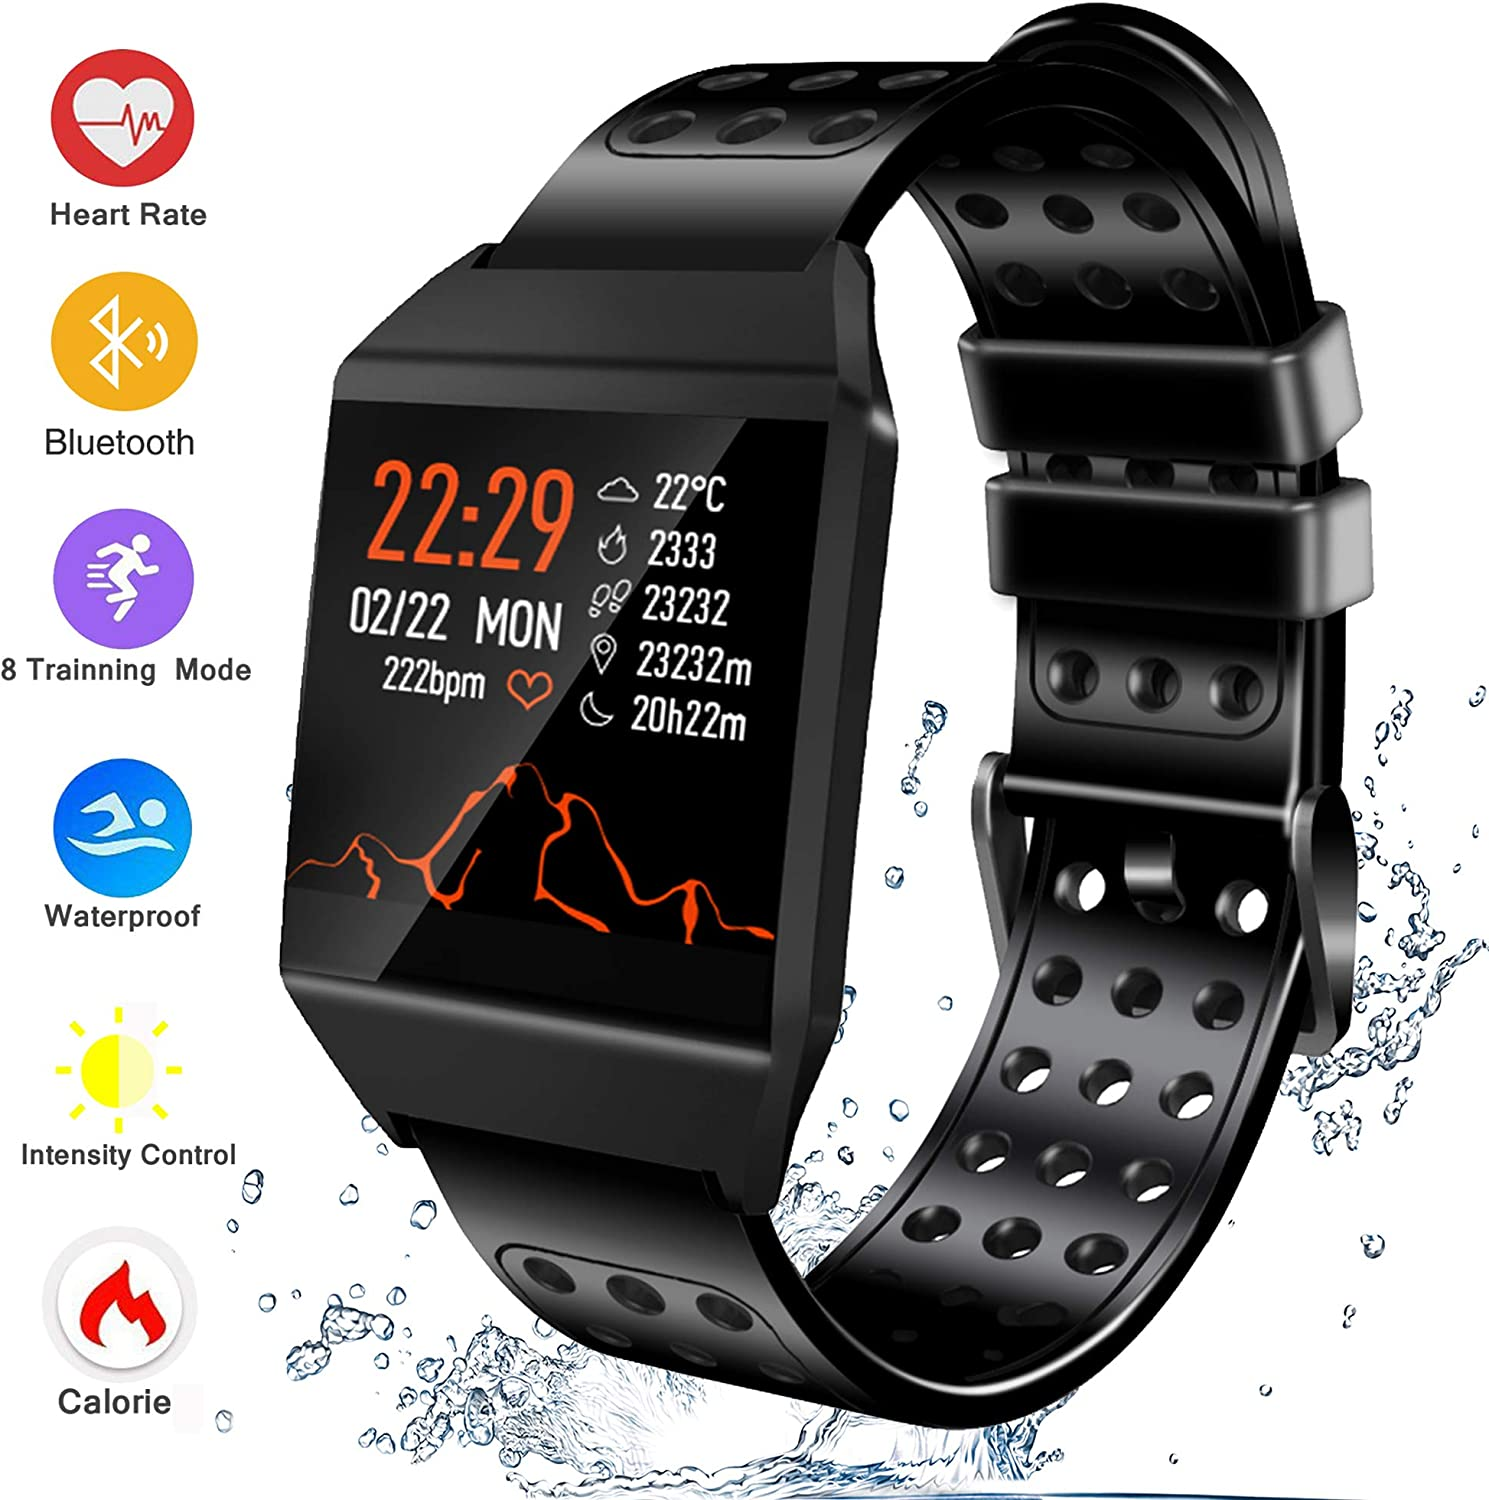 Amazon.com: Fitness Tracker reloj inteligente, rastreador de ...